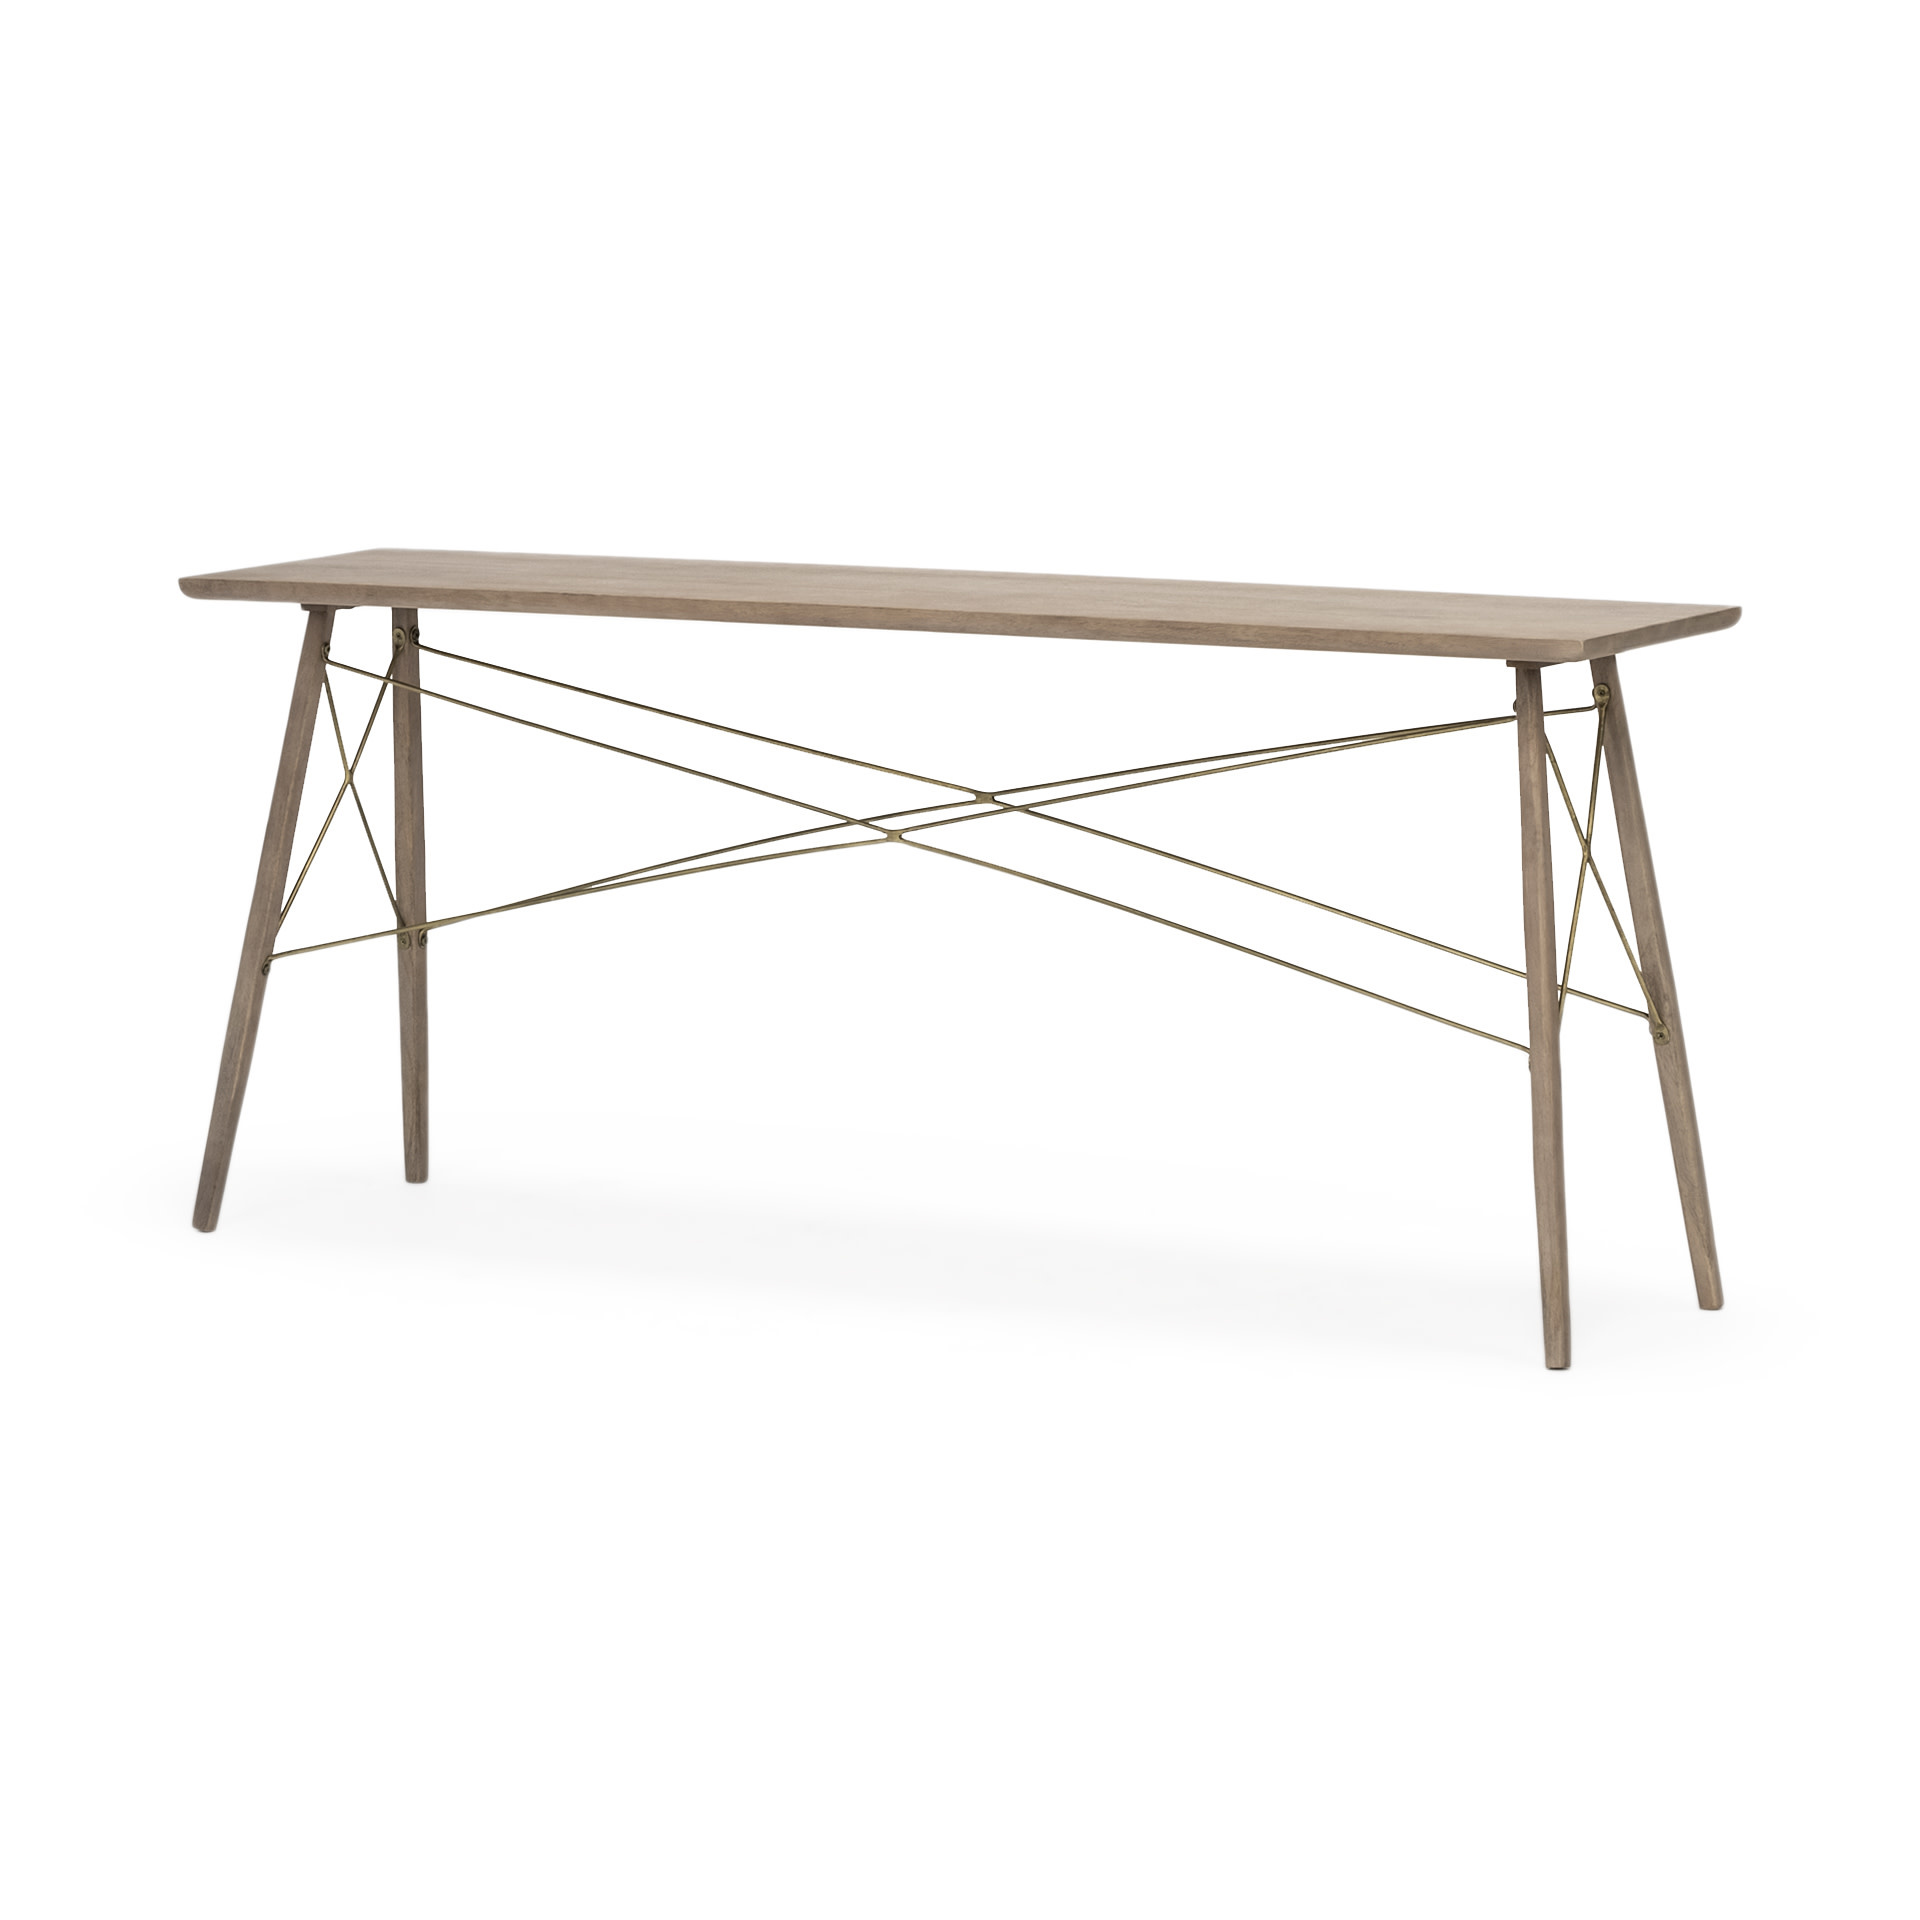 Kirby I Medium Brown Wooden Cross Braced Console Table